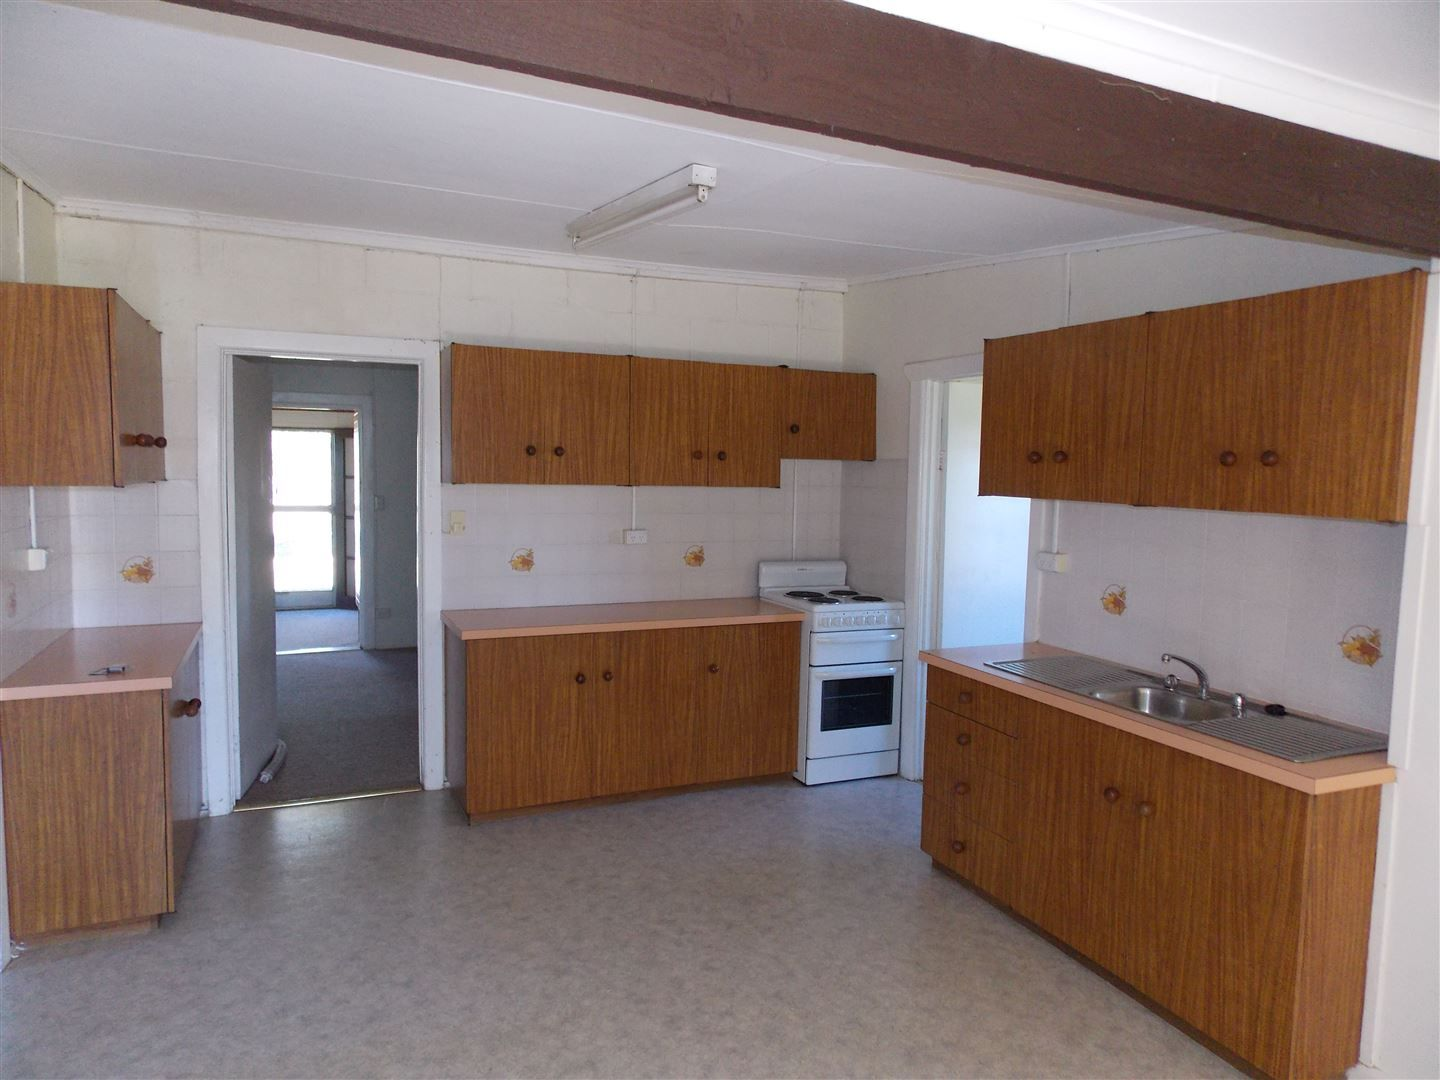 233 Bylong Valley Way Ilford, Ilford NSW 2850, Image 2